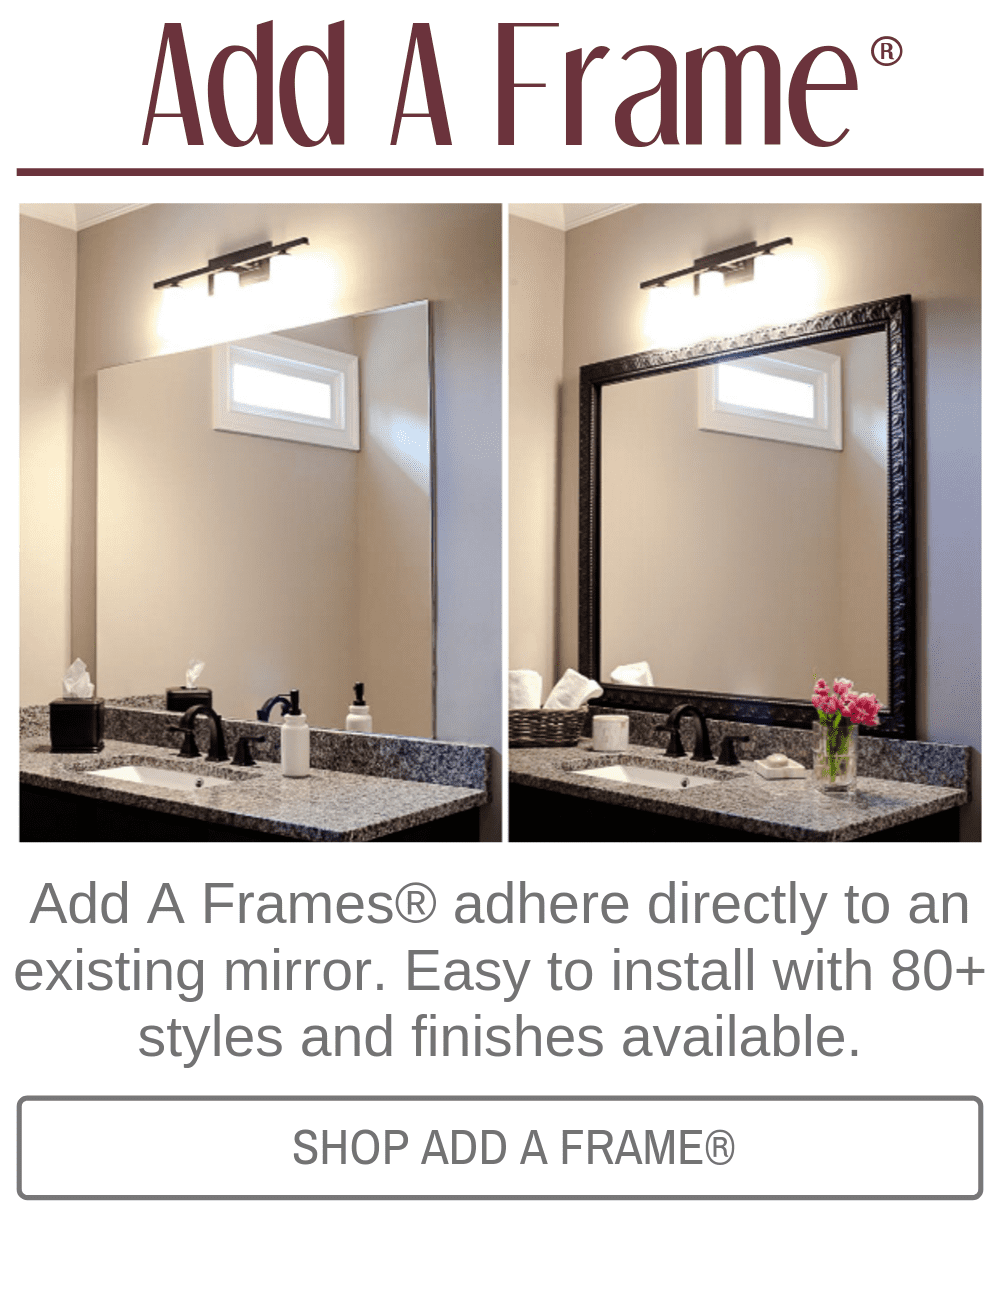 Add A Frame The Self Adhesive Frame For Mirrors Stick On Frames Bathroom Mirror Frame Mirror Frame Kits Large Bathroom Mirrors